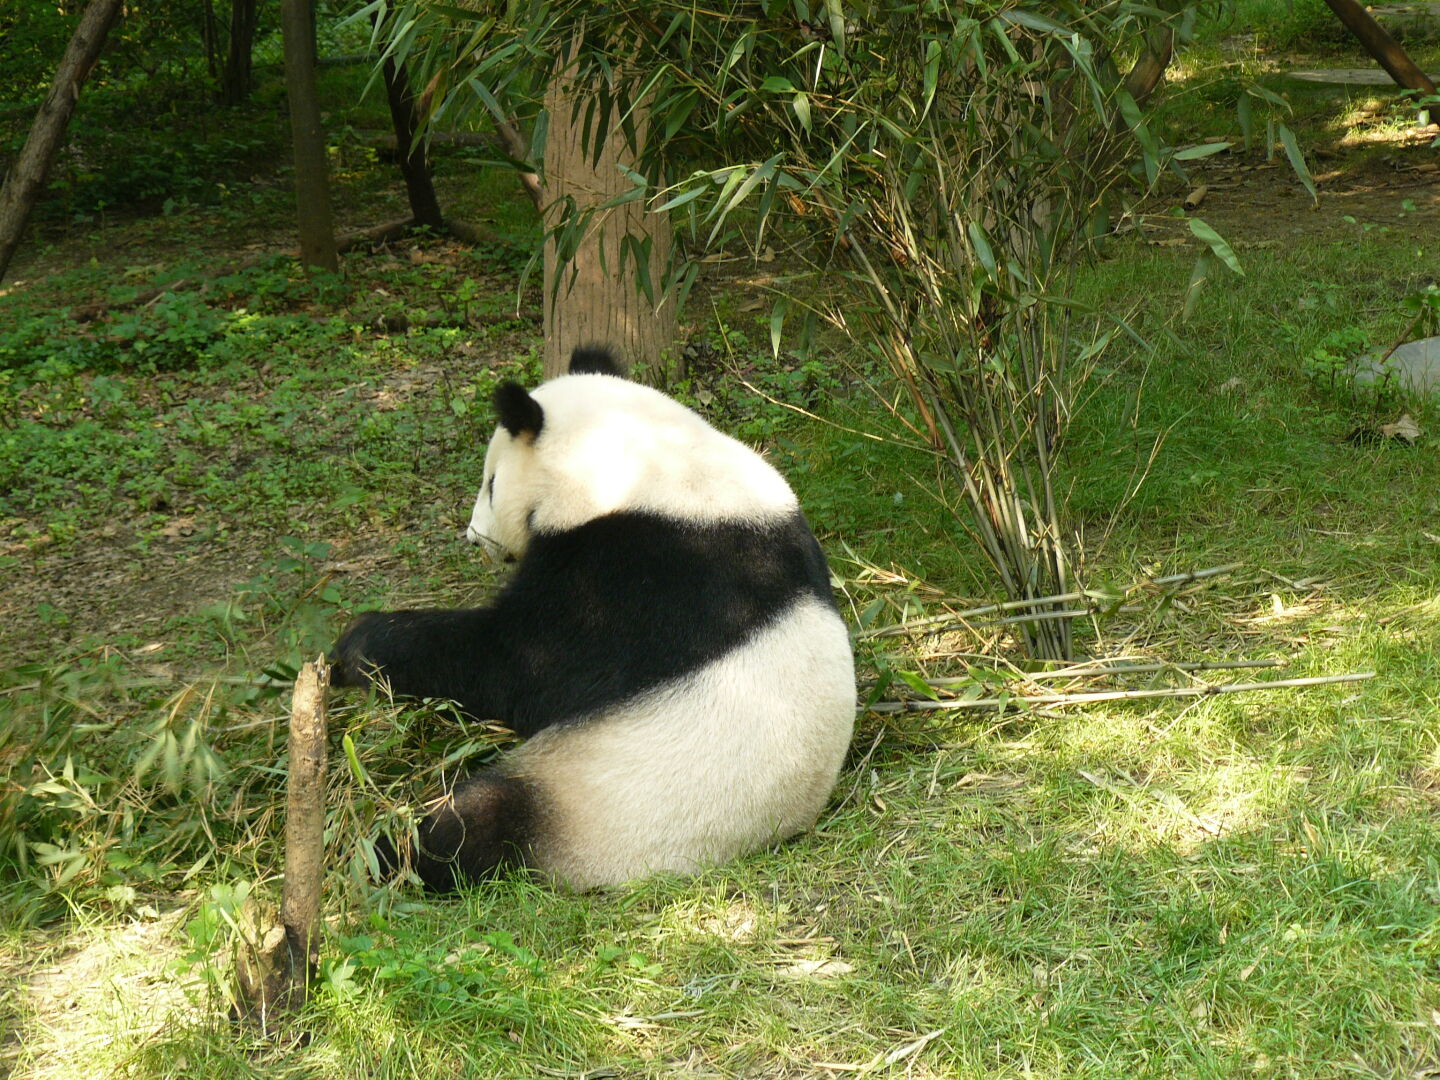 Pandas prefer eating with their backs to the spectators.